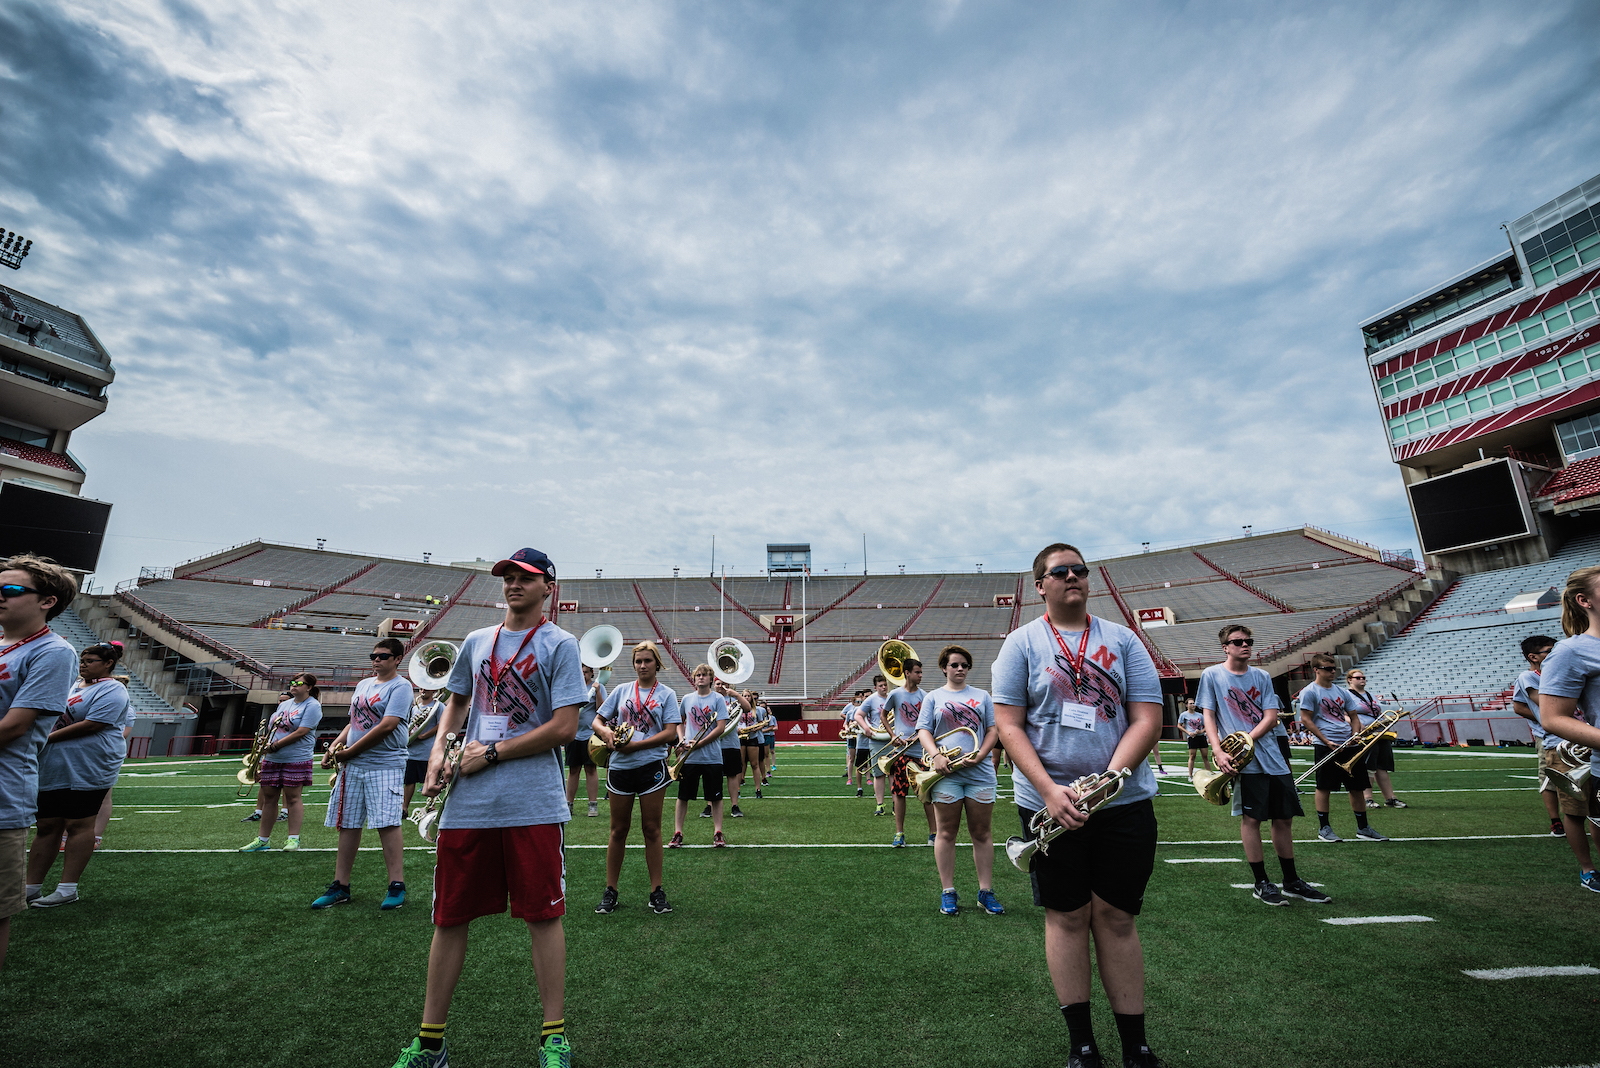 Cornhusker Marching Band Practicing at Memorial Stadium